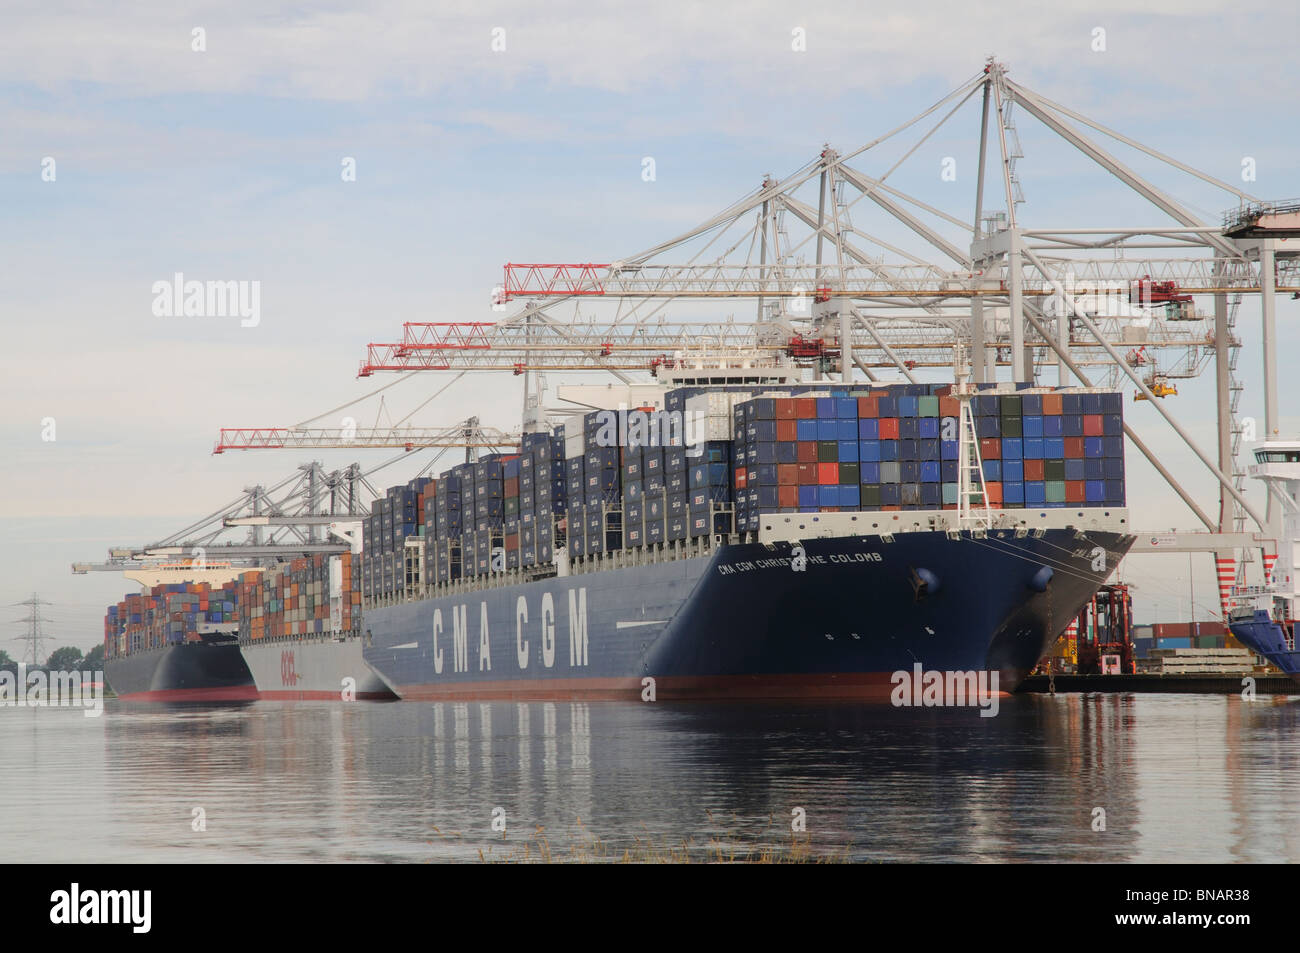 One of the worlds largest container ships the CMA CGM Christophe Colomb on the quayside at DP World Southampton - Stock Image